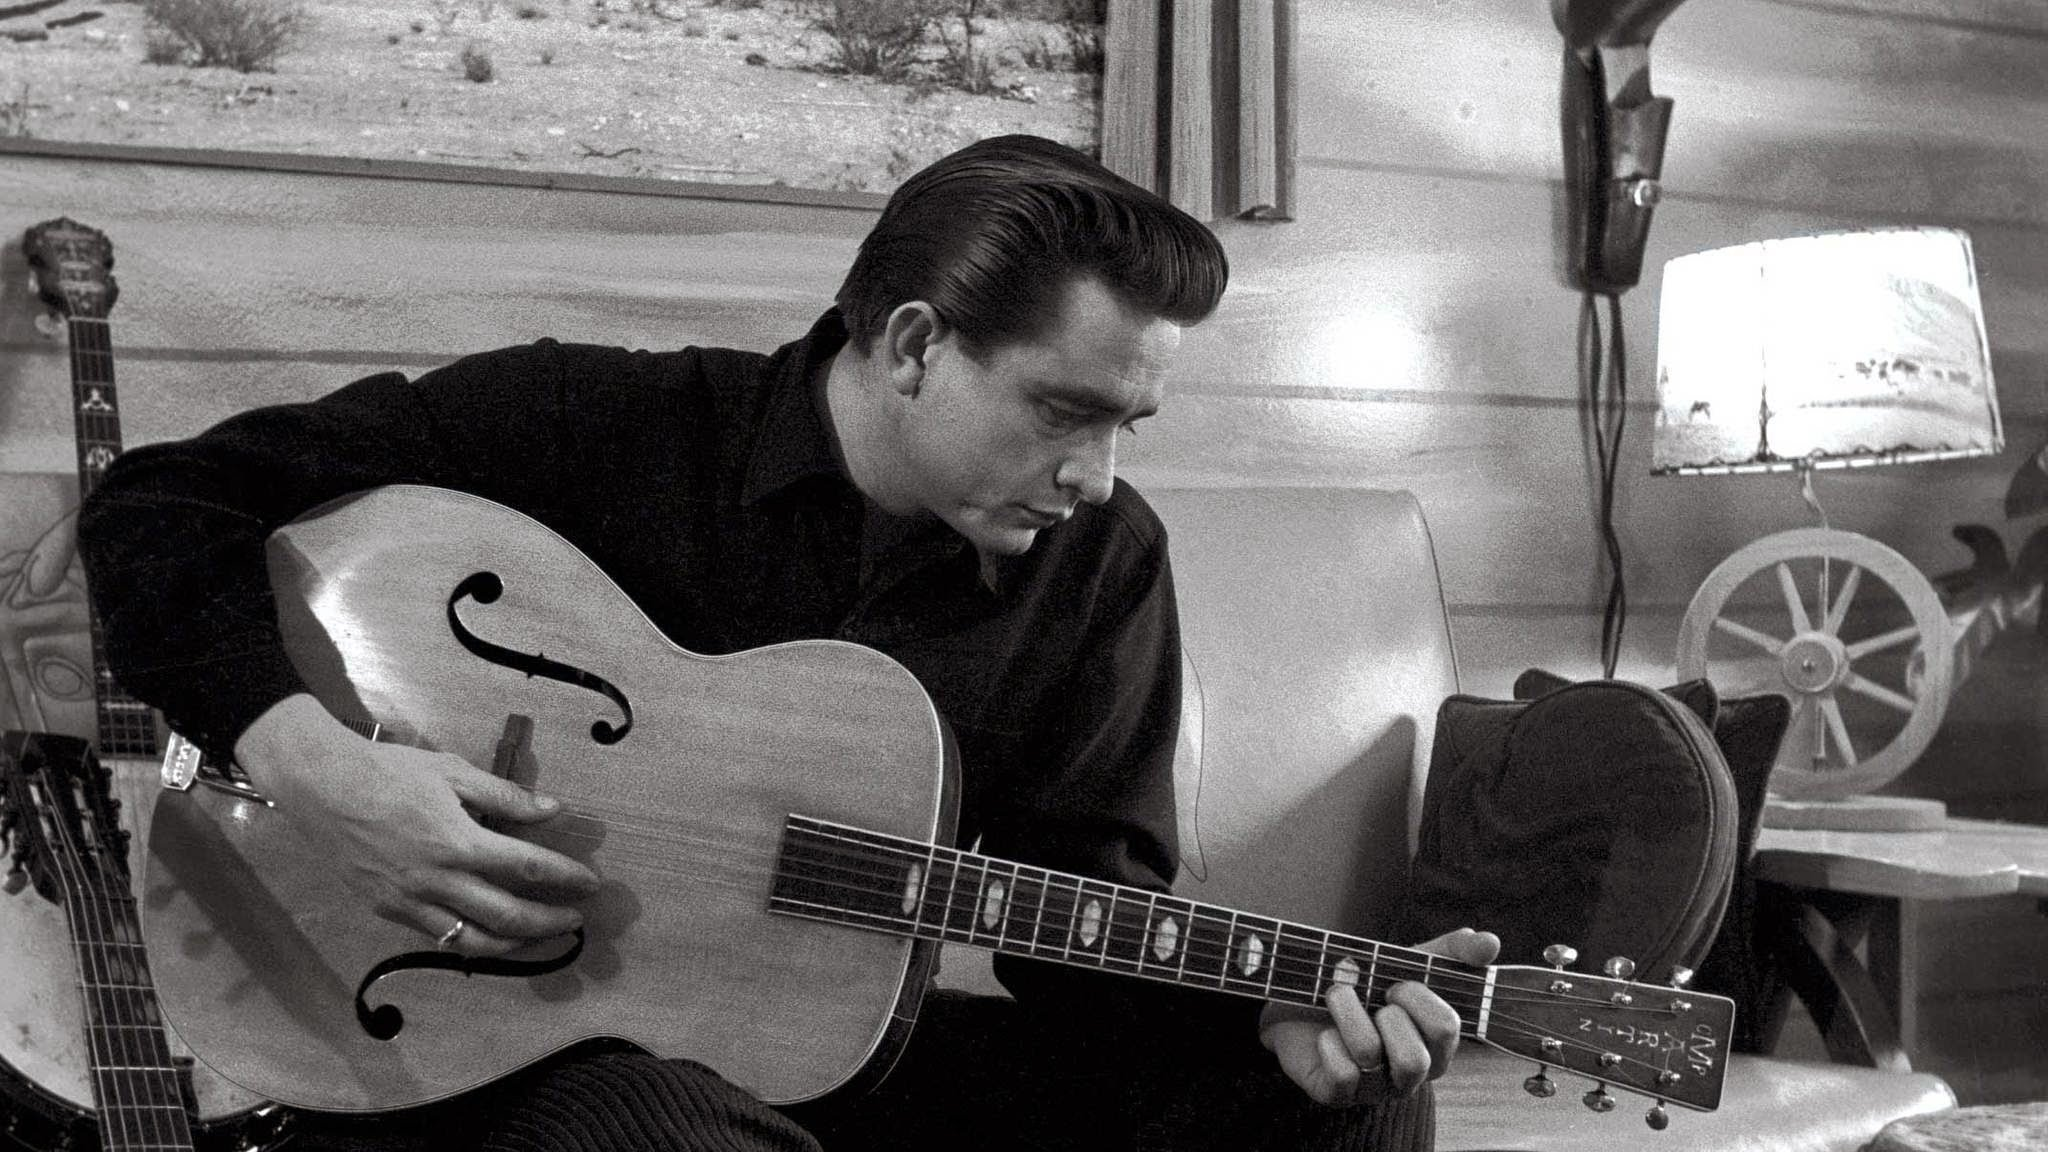 JOHNNY CASH Countrywestern Country Western Blues Singer